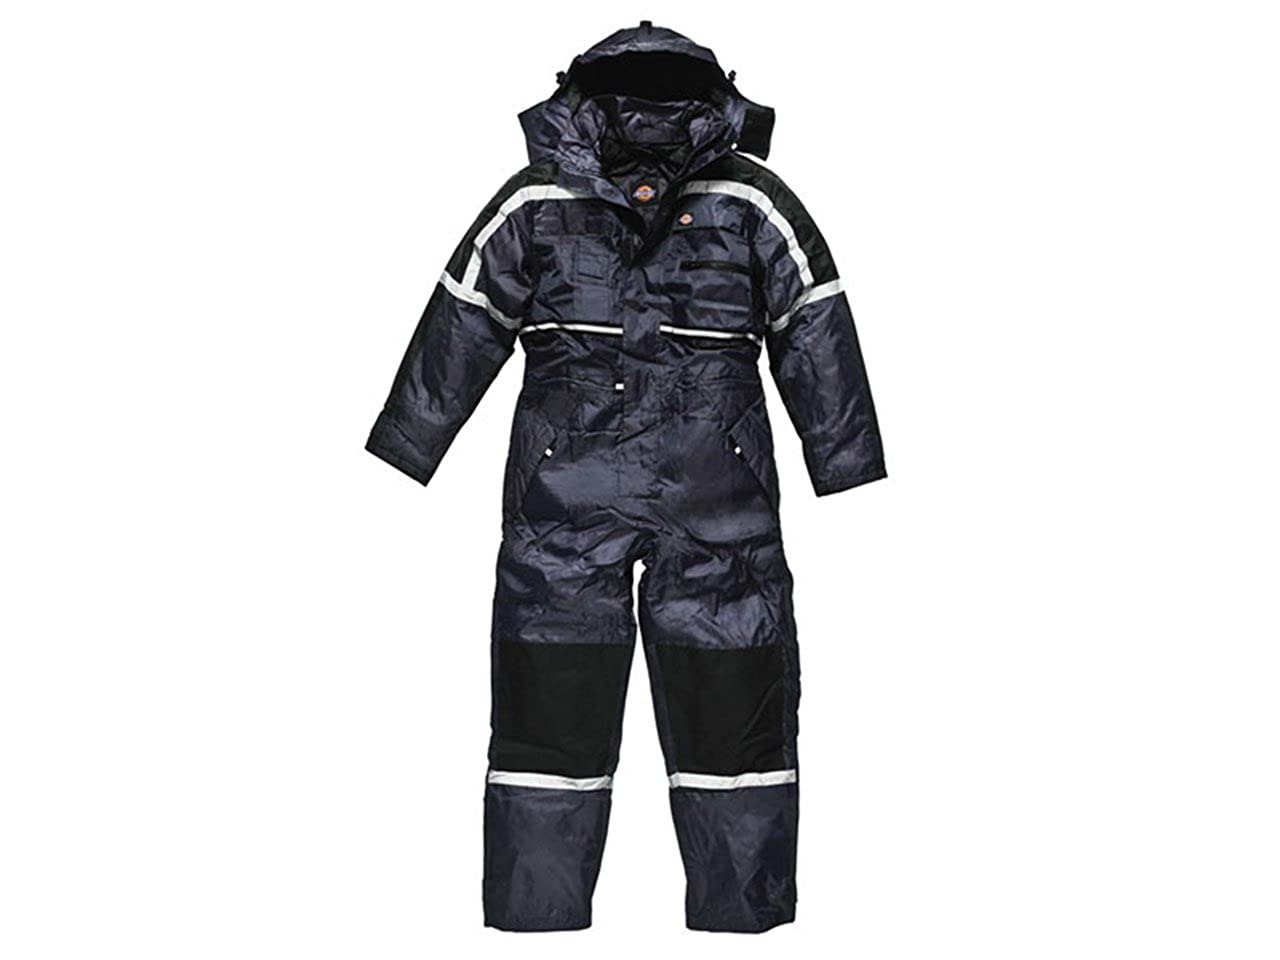 Dickies Mens Padded Heavy Duty Coverall Overall Hard Wearing Hood Quilted Lining Leg Zip Warm Multi Chest Pockets Back Pockets Tunnel Suit Weather Protection Reflective piping detail WP15000